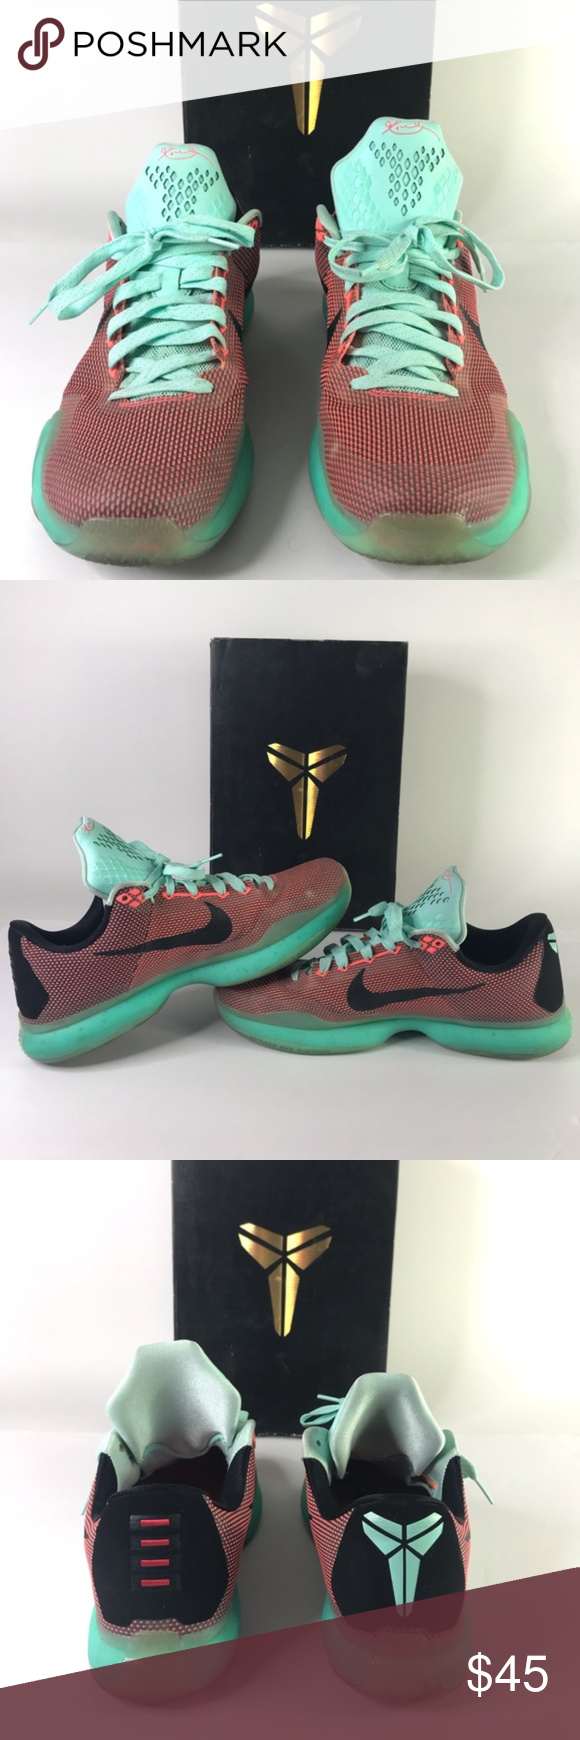 promo code 03bb9 67a1d Nike Kobe 10 Easter Men s Size 12 Nike Kobe 10 Easter Men s Size 12 Hot Lava